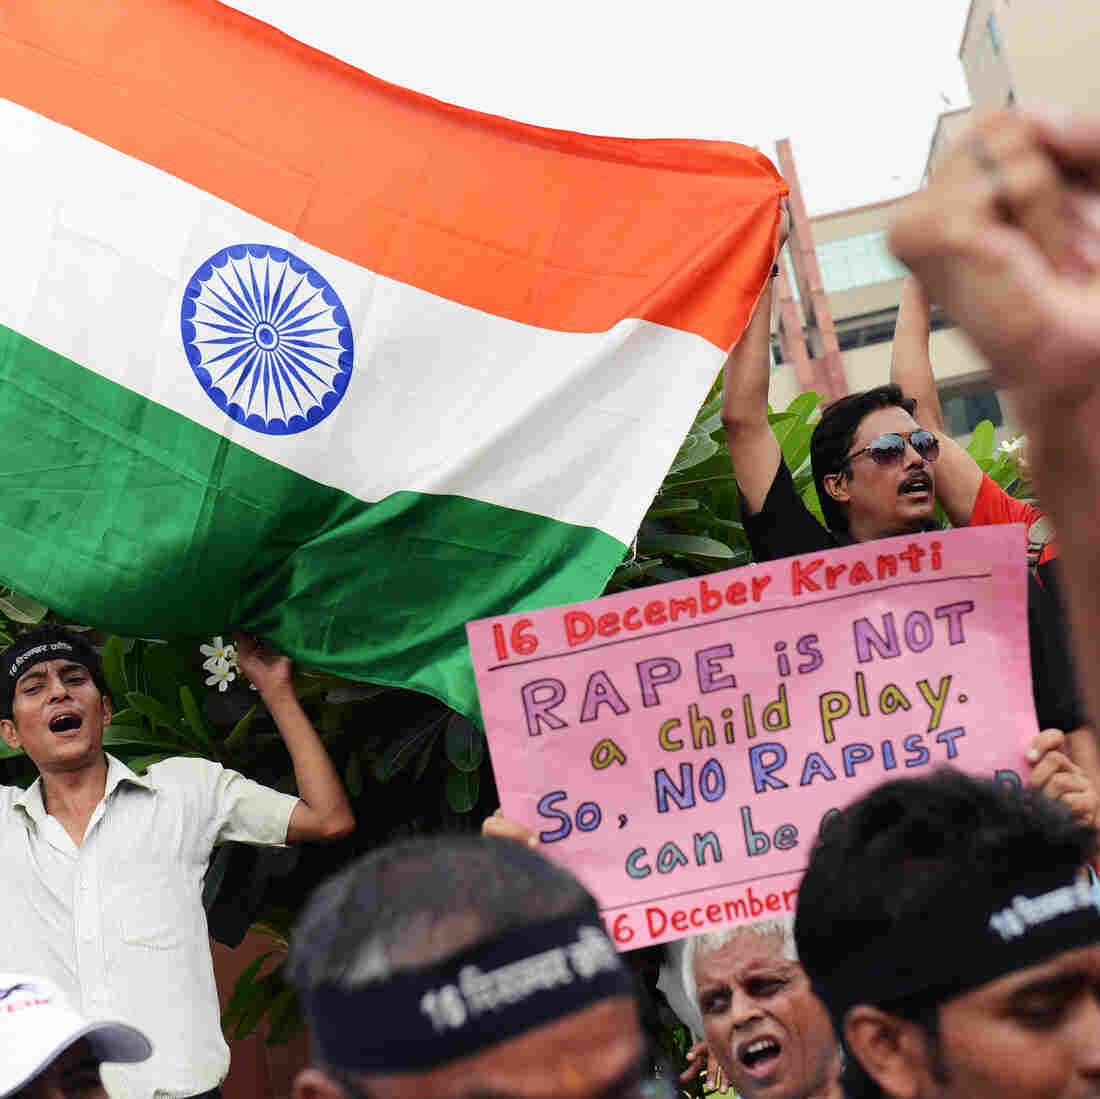 Death For 4 Men Convicted In Indian Gang Rape And Murder